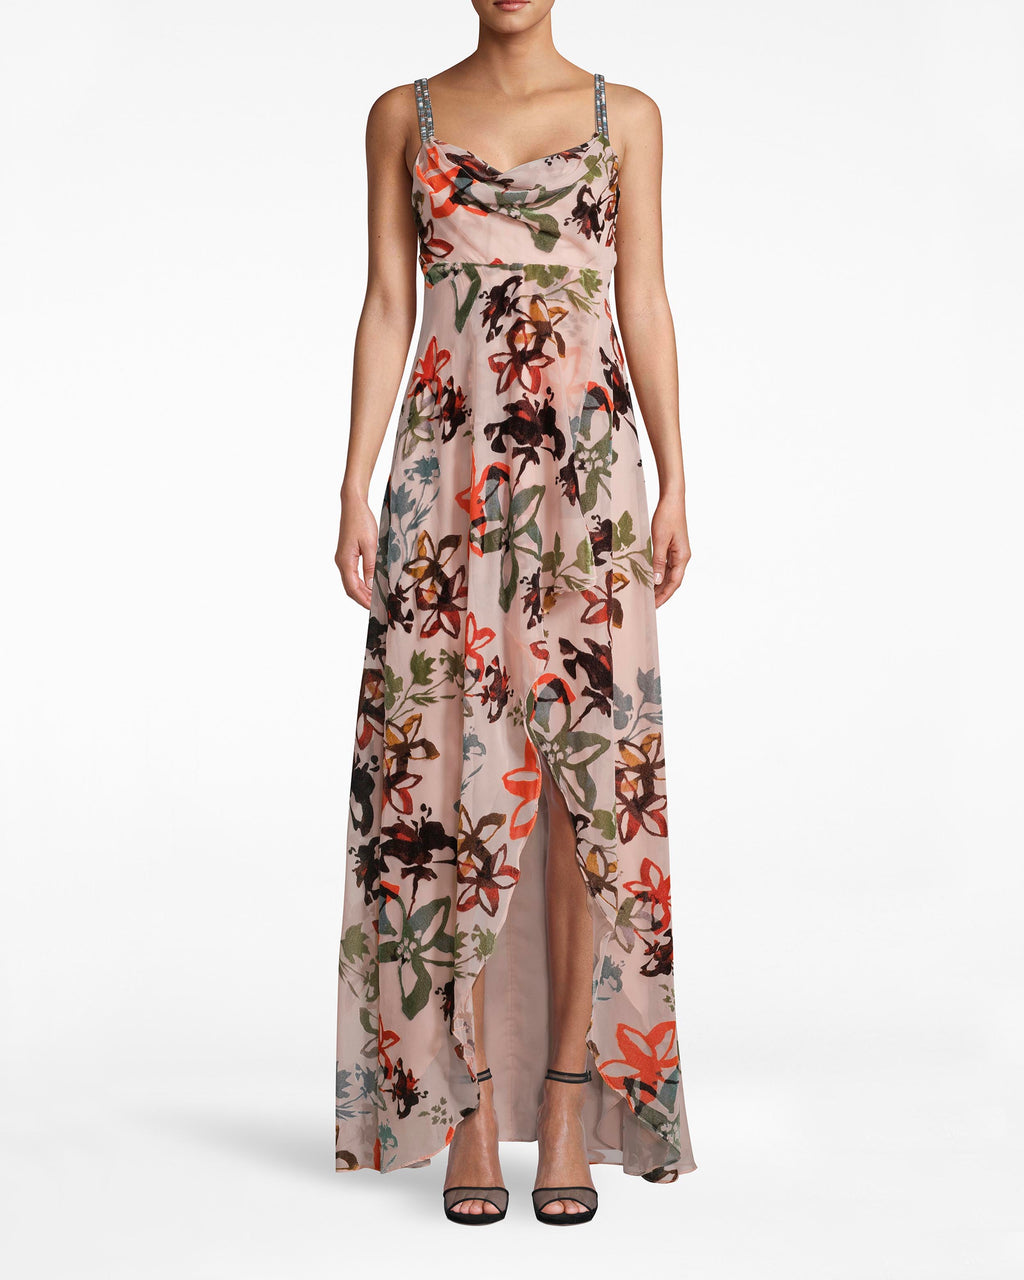 CD10092 - AUTUMN DREAM BURNOUT HI-LOW DRESS - dresses - long - Hi-Low can you go? The blooming print on this high-low dress is full of romance. The asymmetrical hem and bejeweled straps add the perfect dose of flair. Exposed back zipper for closure.